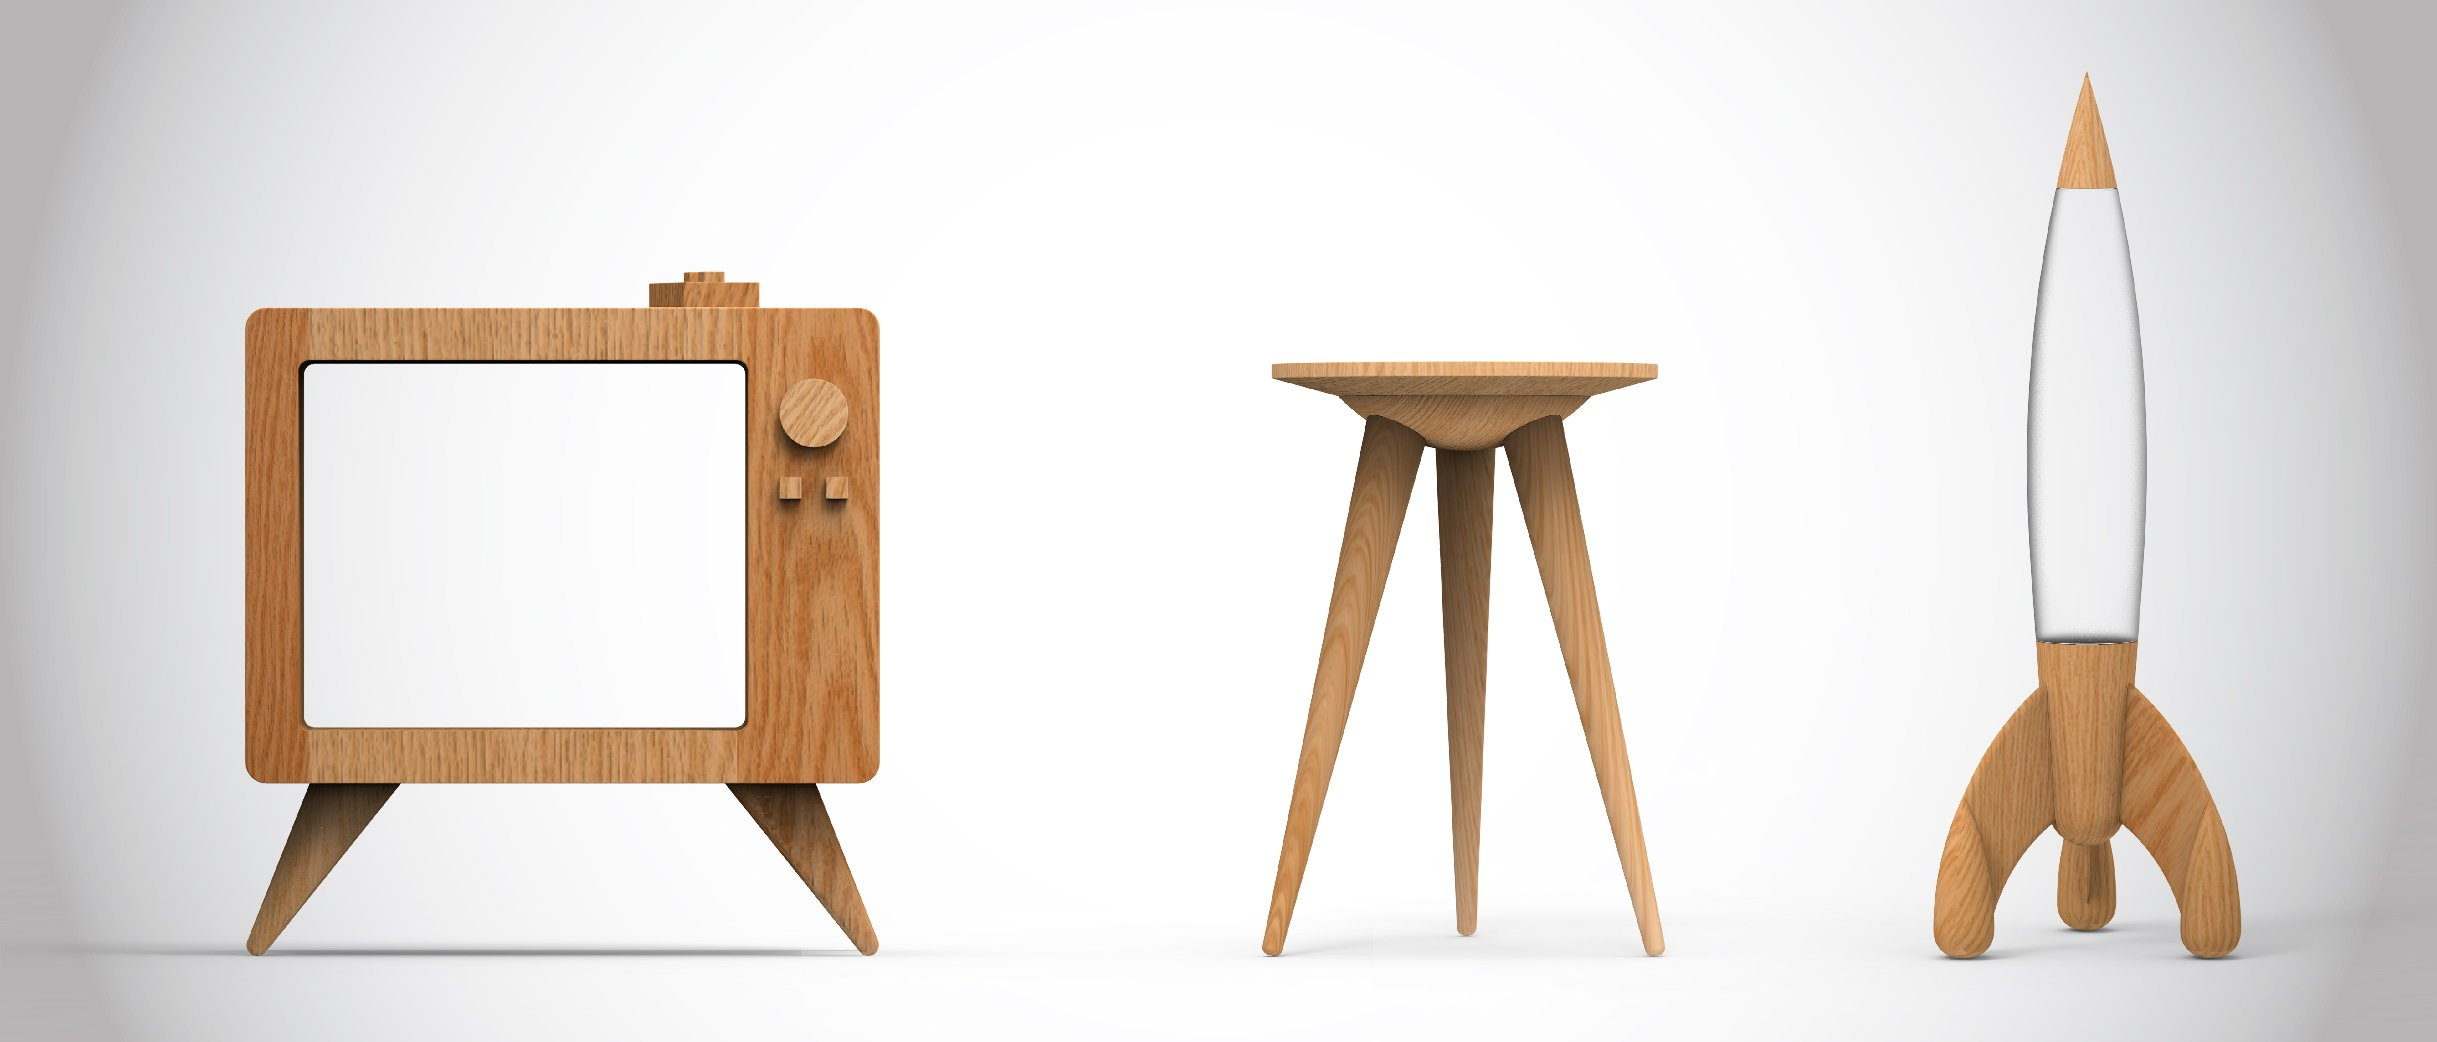 furniture_design_01x